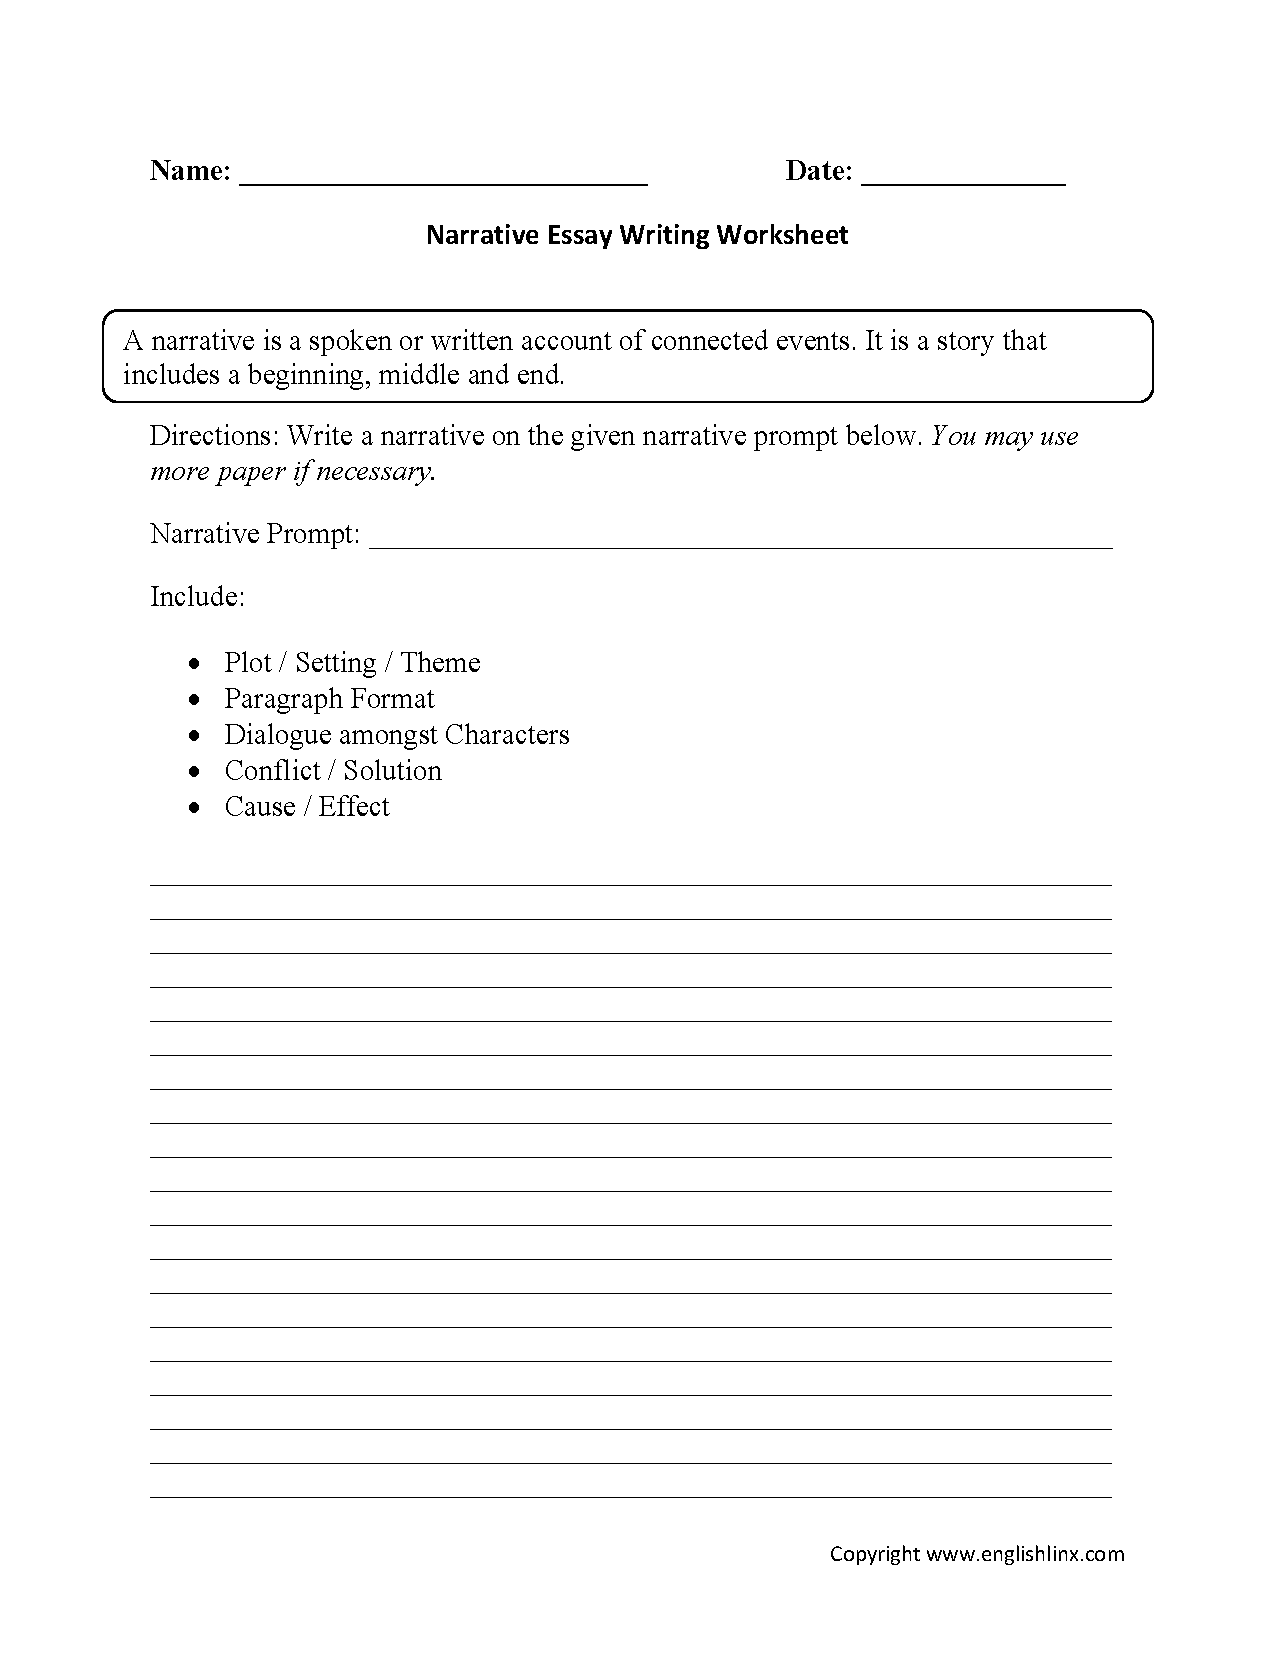 Narrative Essay Writing Worksheets  English Language Arts